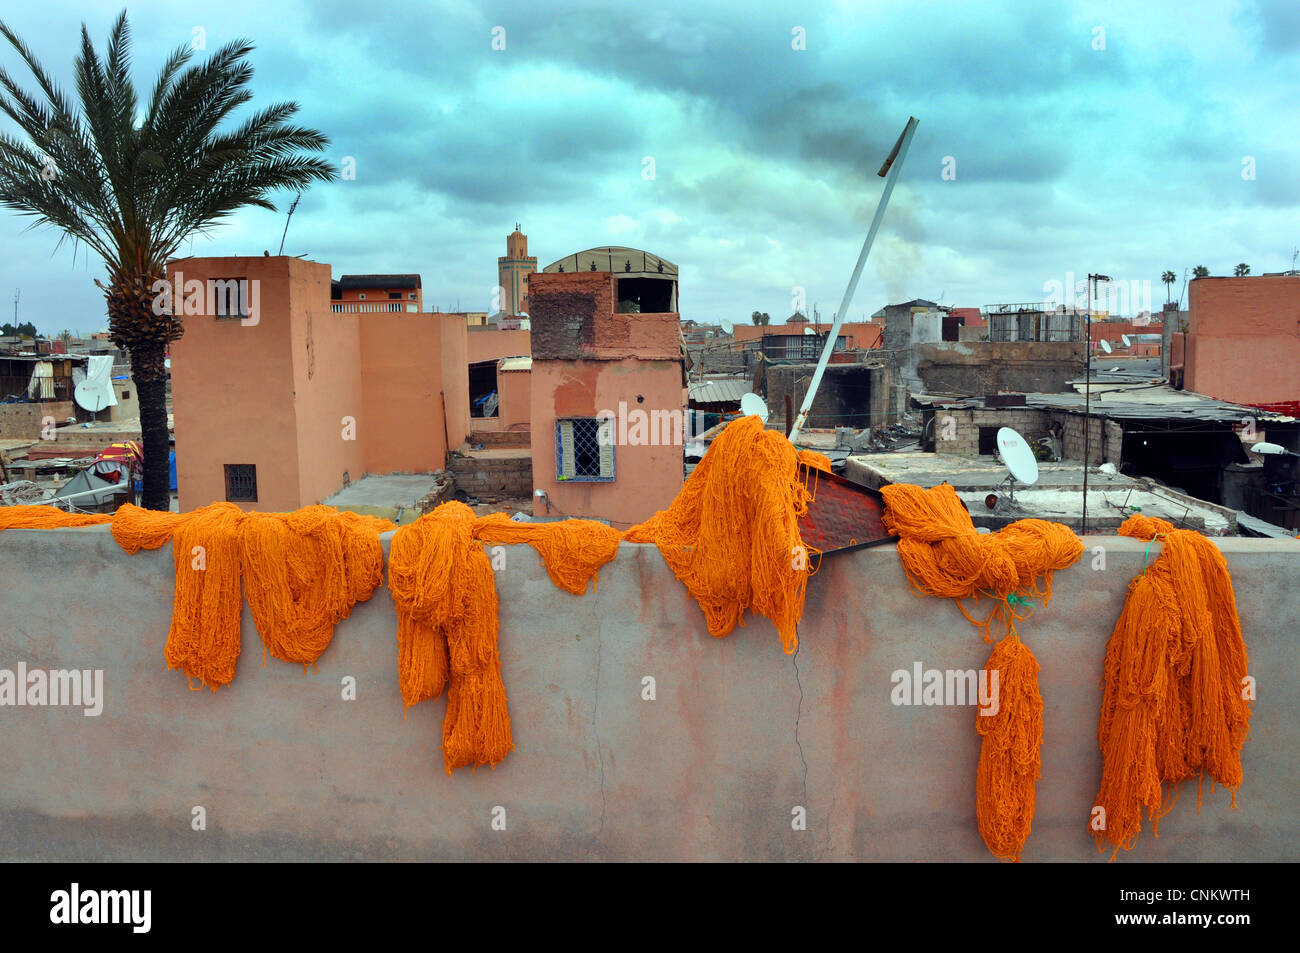 Traditional Wool dye process in the Souks of Marrakesh, Morocco Stock Photo